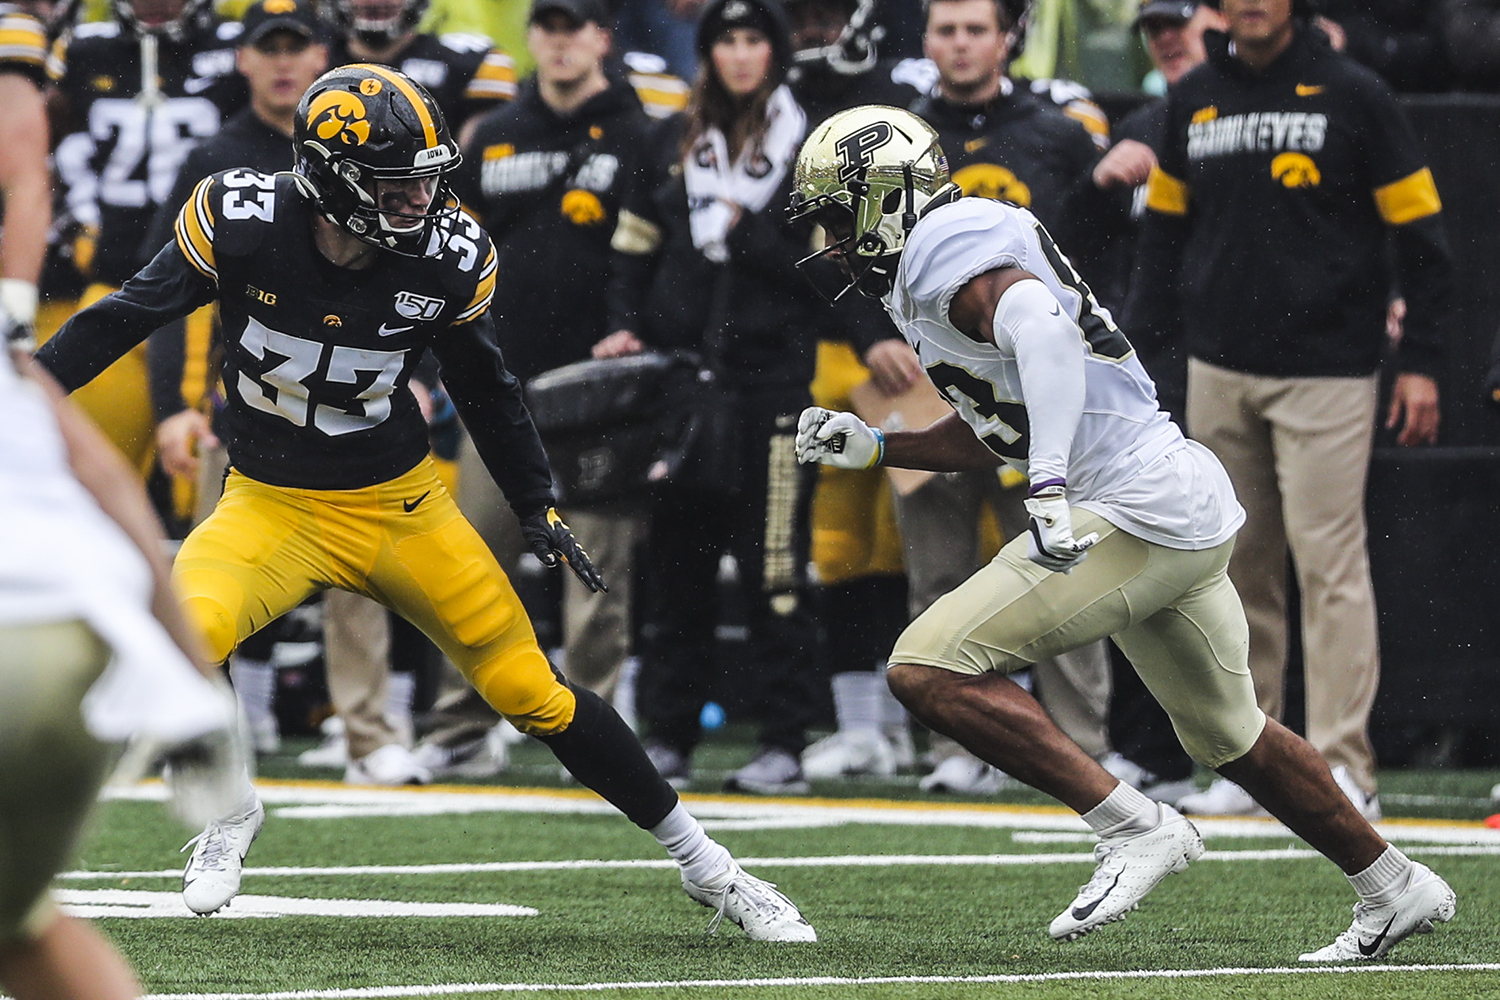 Iowa defensive back Riley Moss prepares to defend during the Iowa football game against Purdue at Kinnick Stadium on Saturday, Oct. 19, 2019. The Hawkeyes defeated the Boilermakers 26-20.